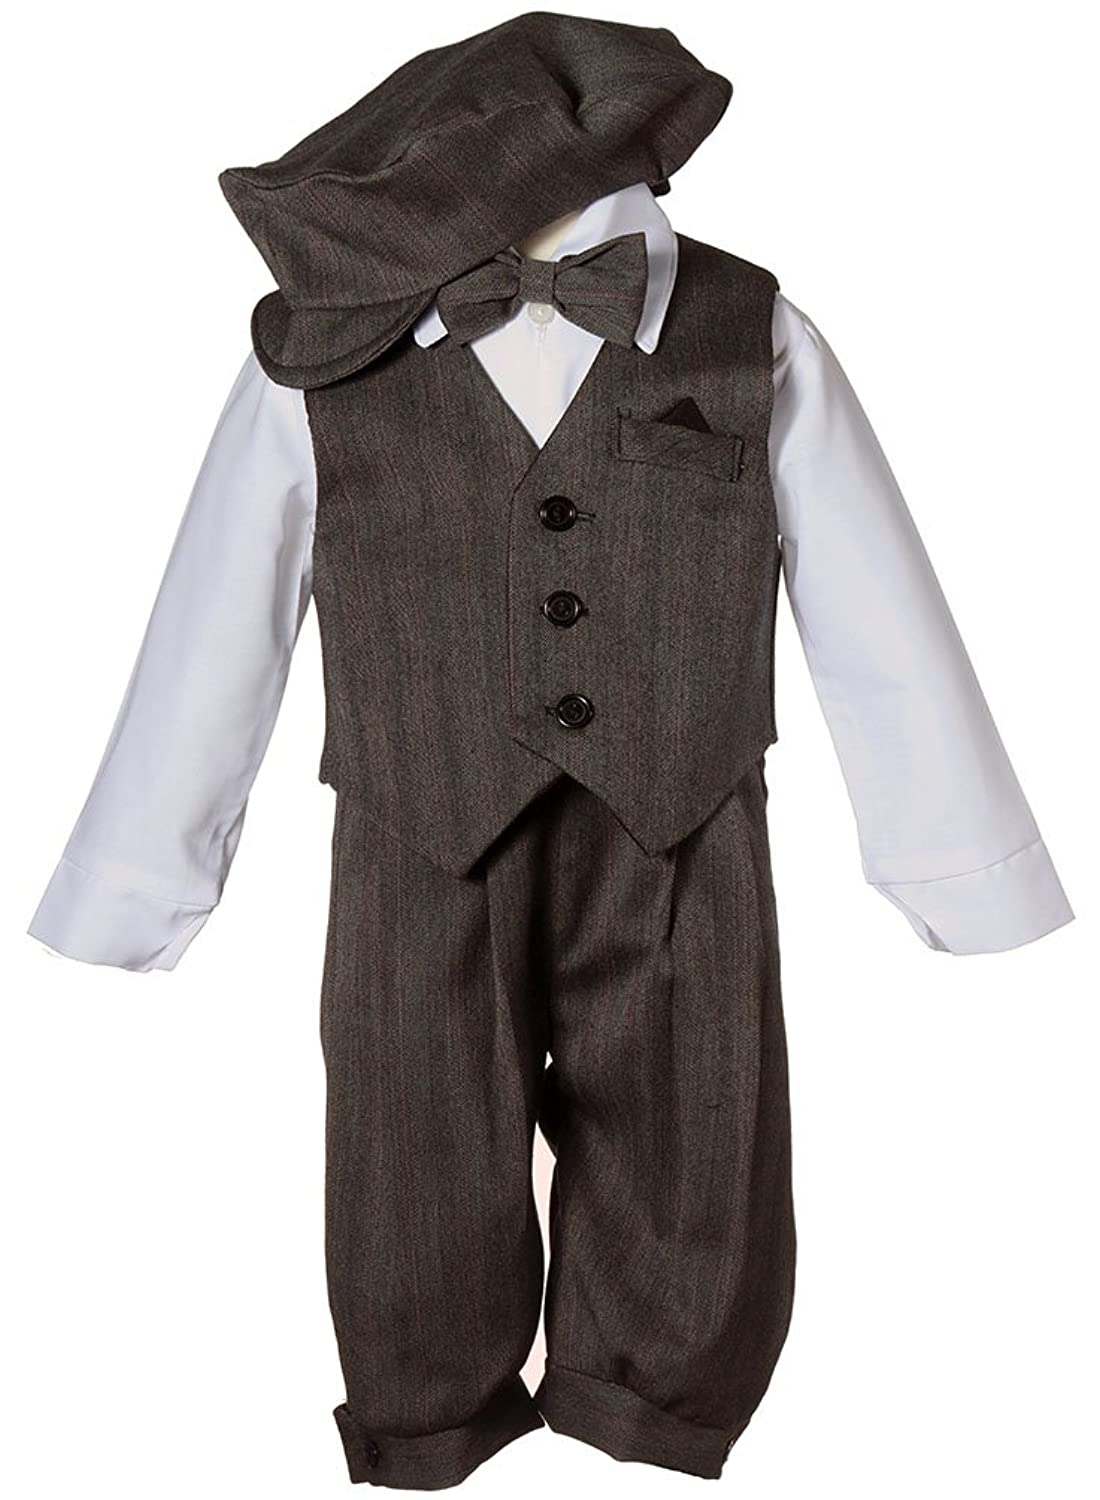 1920s Children Fashions: Girls, Boys, Baby Costumes Boys Toddler Knicker Set with Vest and Hat - Vintage Grey Stripe $34.95 AT vintagedancer.com